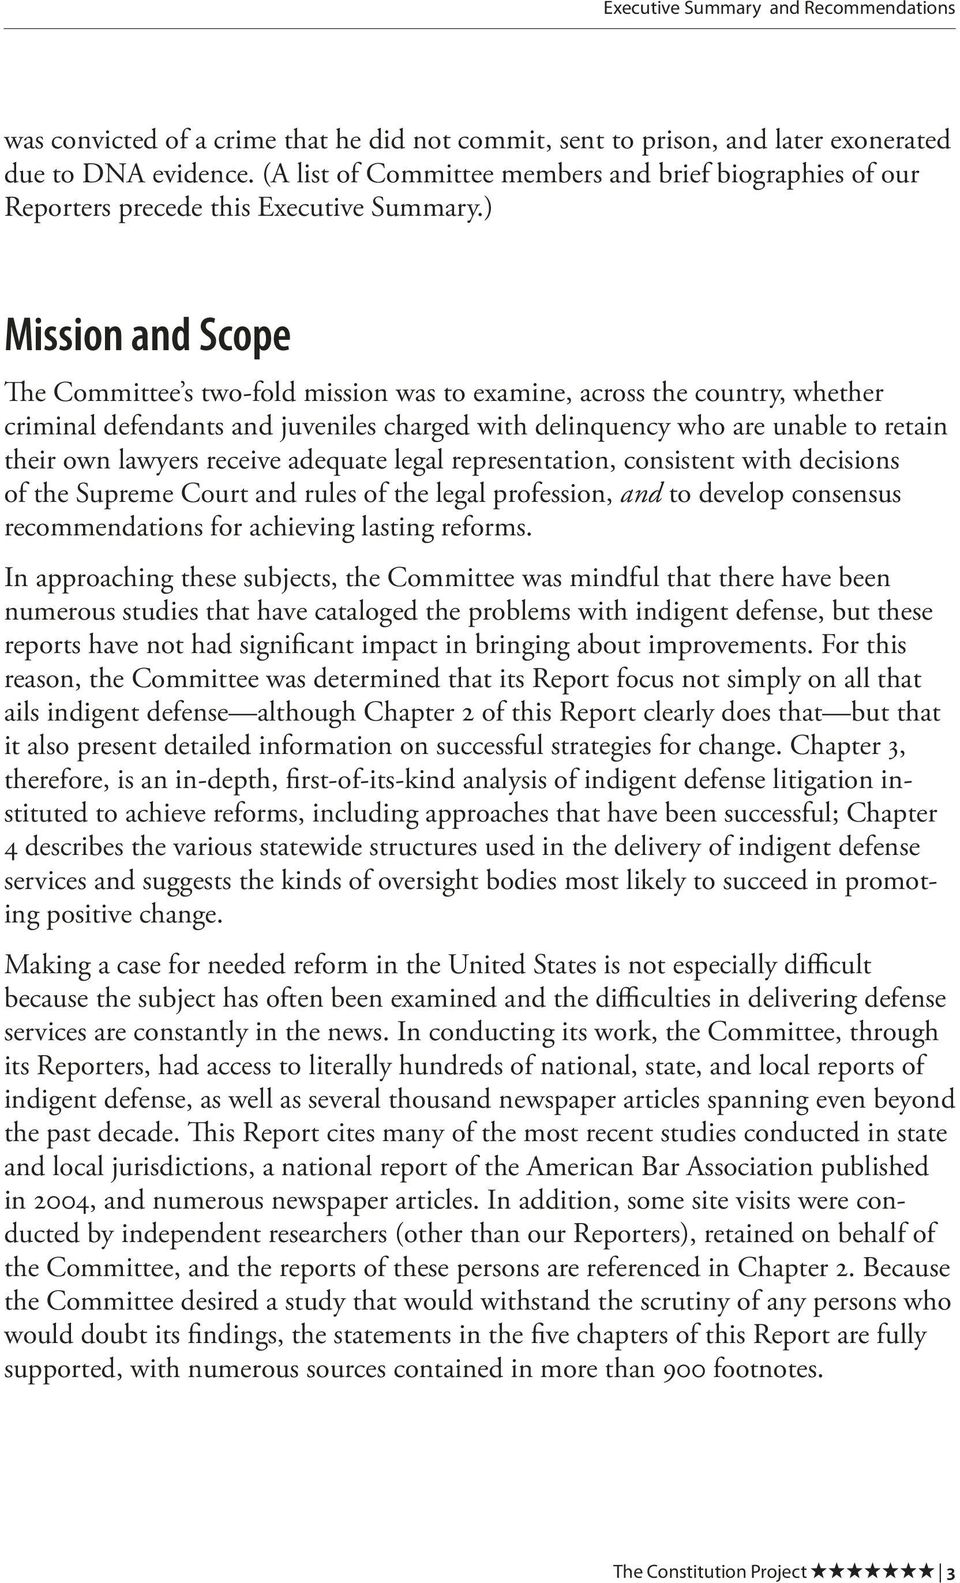 ) Mission and Scope The Committee s two-fold mission was to examine, across the country, whether criminal defendants and juveniles charged with delinquency who are unable to retain their own lawyers